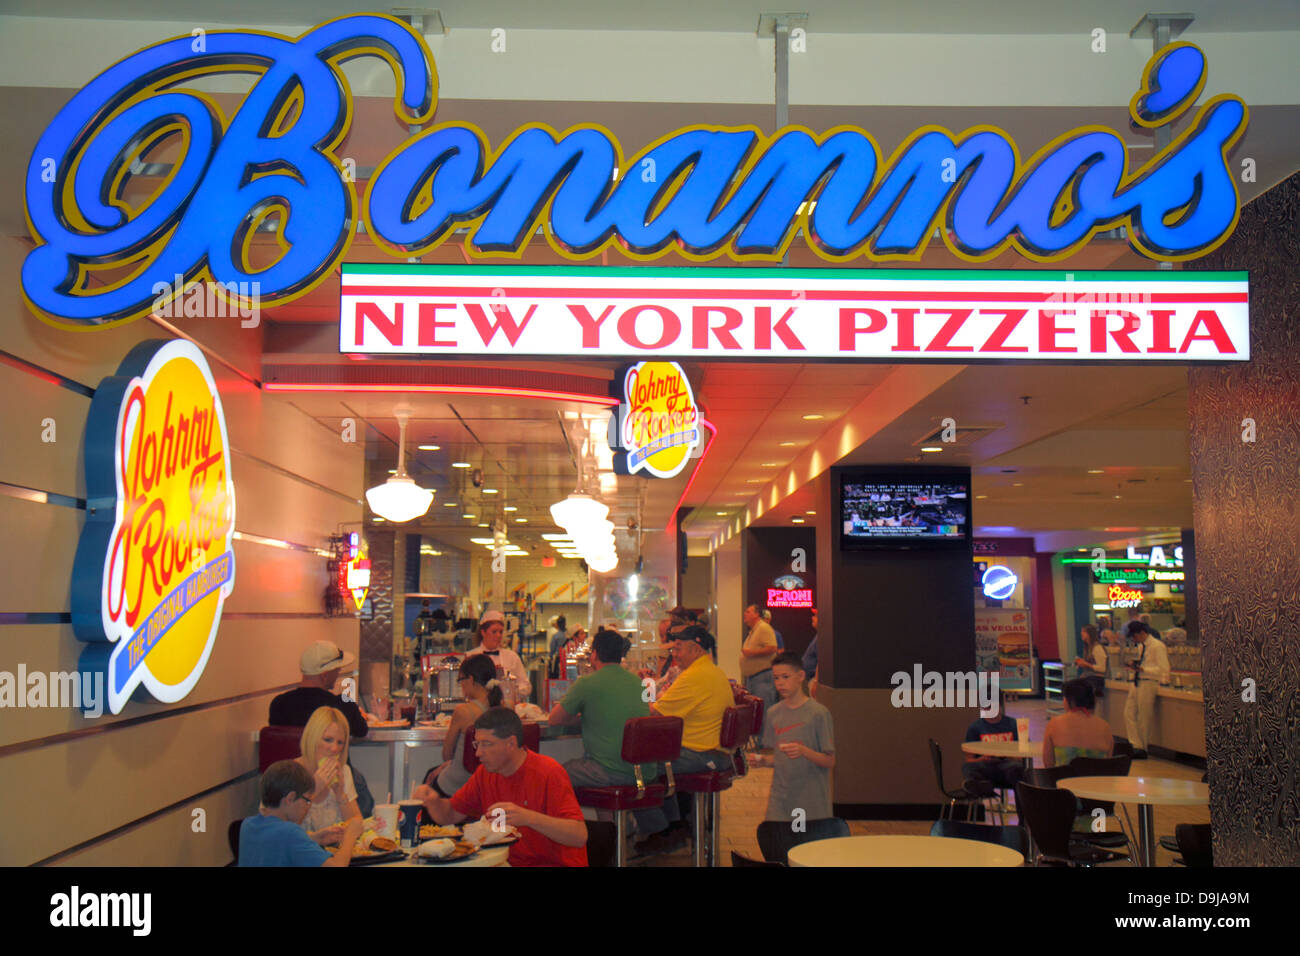 Nevada Las Vegas The Strip South Las Vegas Boulevard Flamingo Las Vegas Hotel and Casino food court Bonanno's - Stock Image